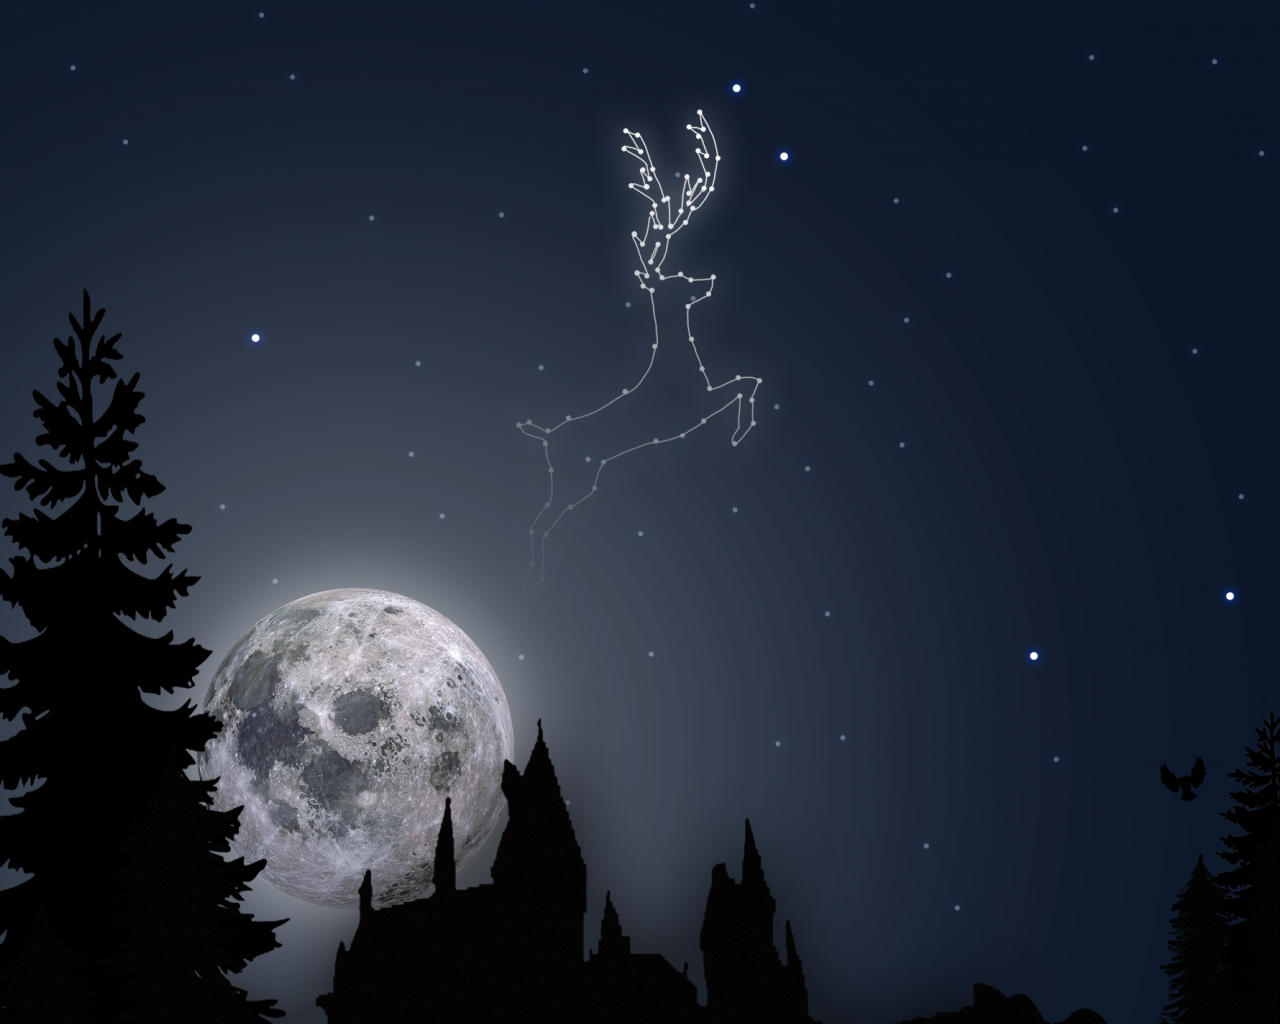 Free Download Hogwarts Phone Wallpaper Harry Potter Inspired